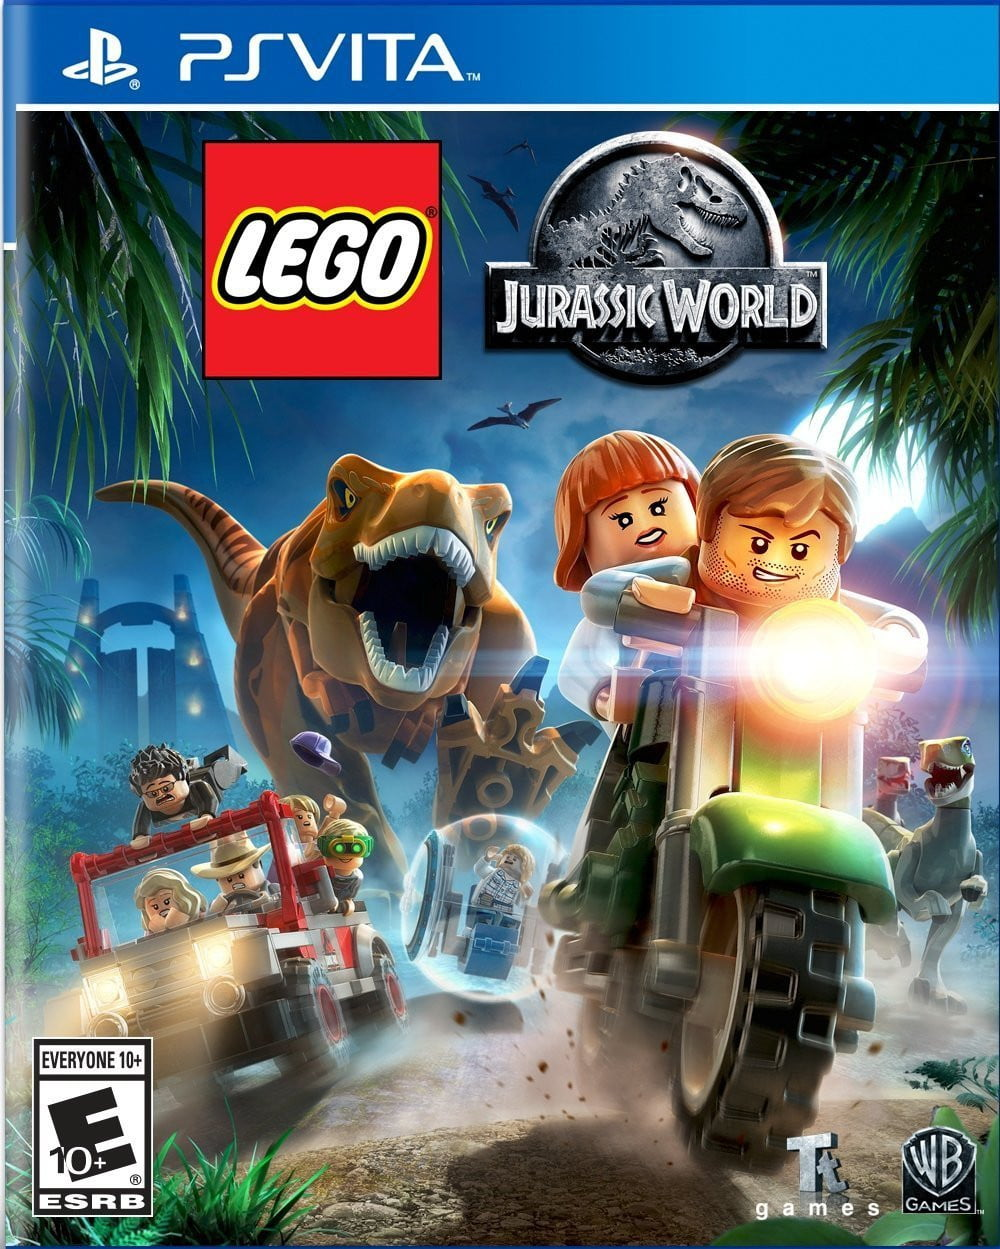 Buy LEGO Jurassic World PS Vita in Egypt - Shamy Stores